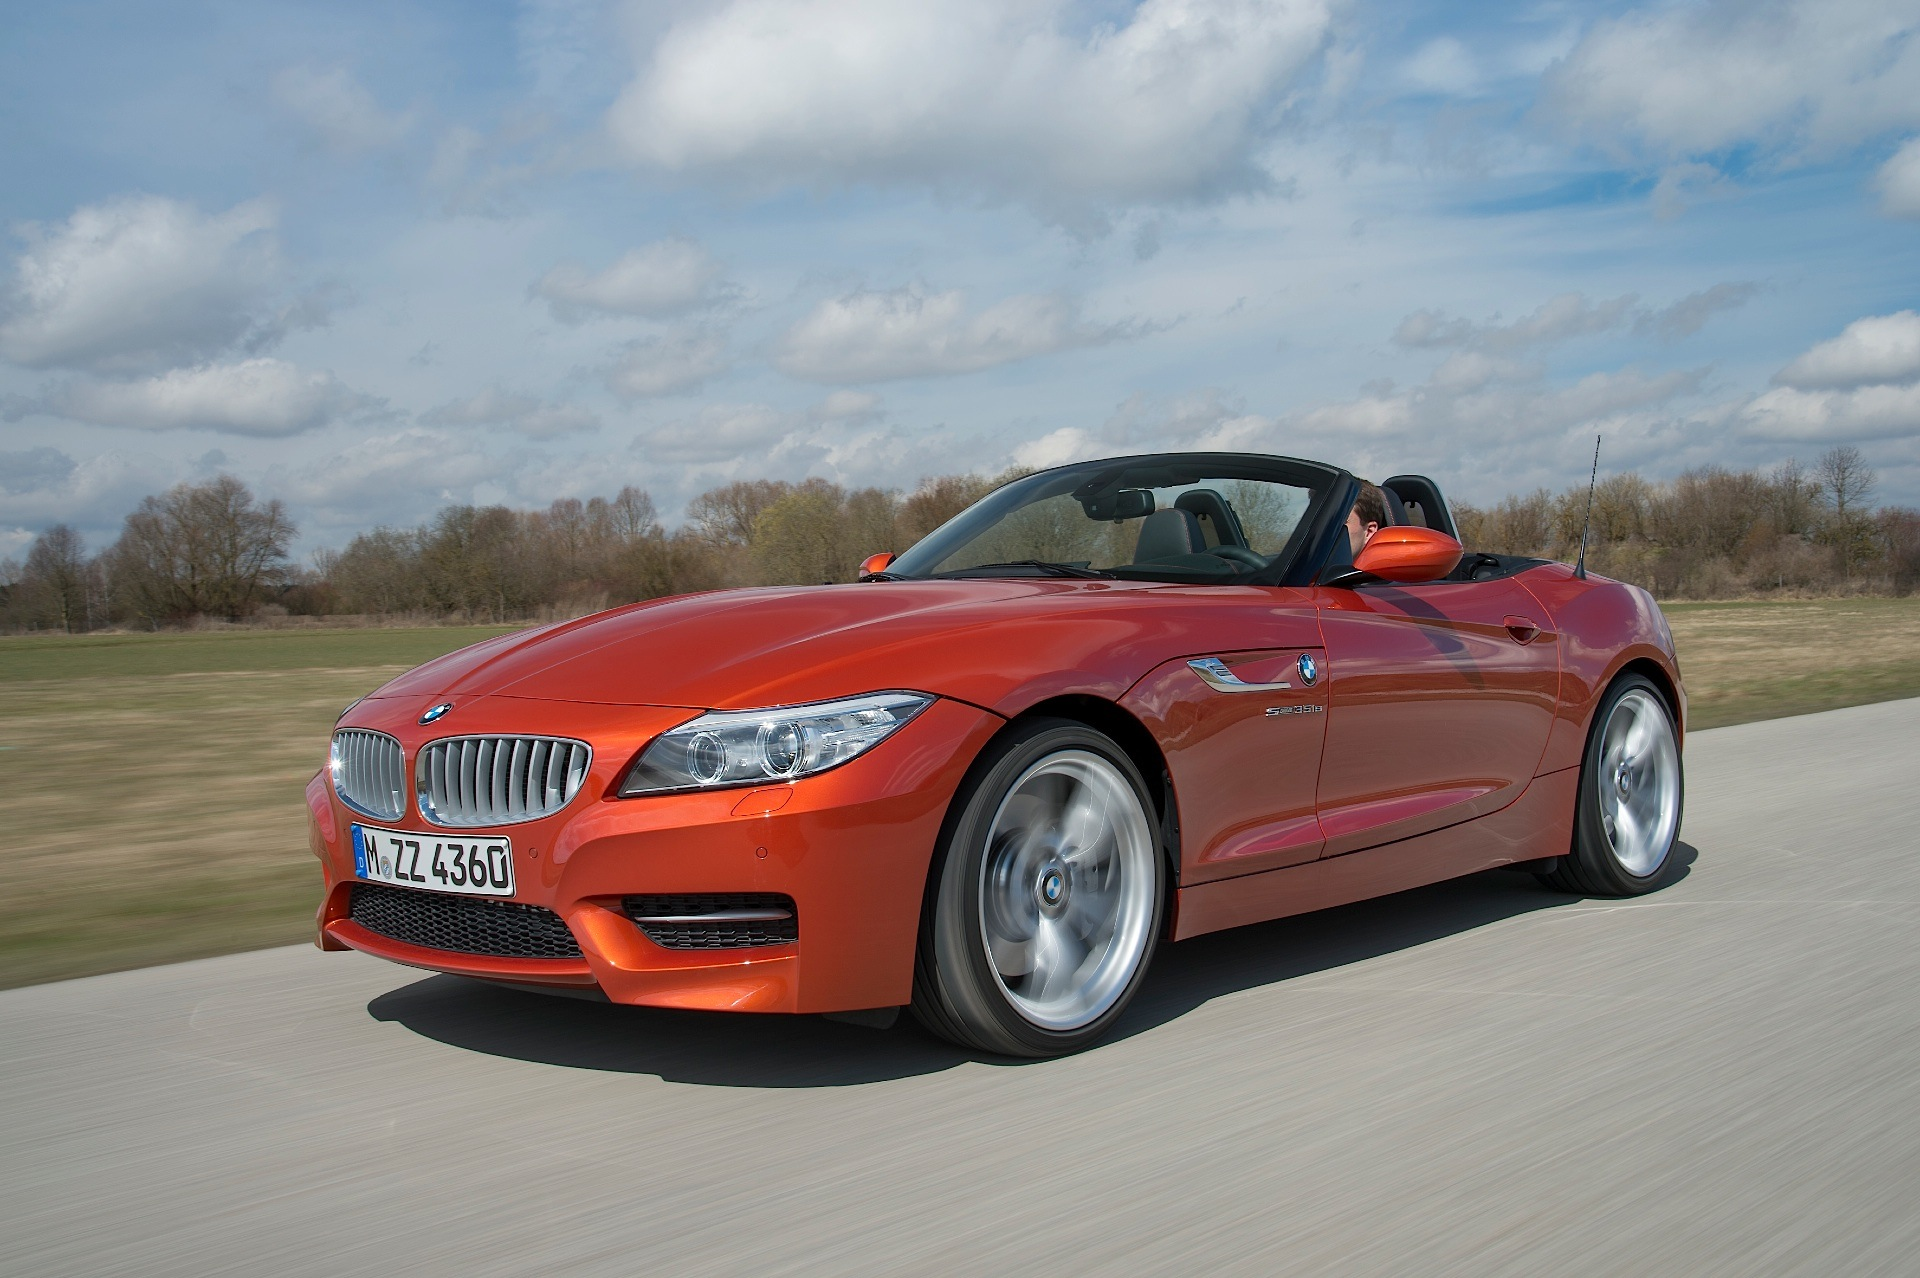 prices for 2016 bmw z4 roadster remain unchanged autoevolution. Black Bedroom Furniture Sets. Home Design Ideas